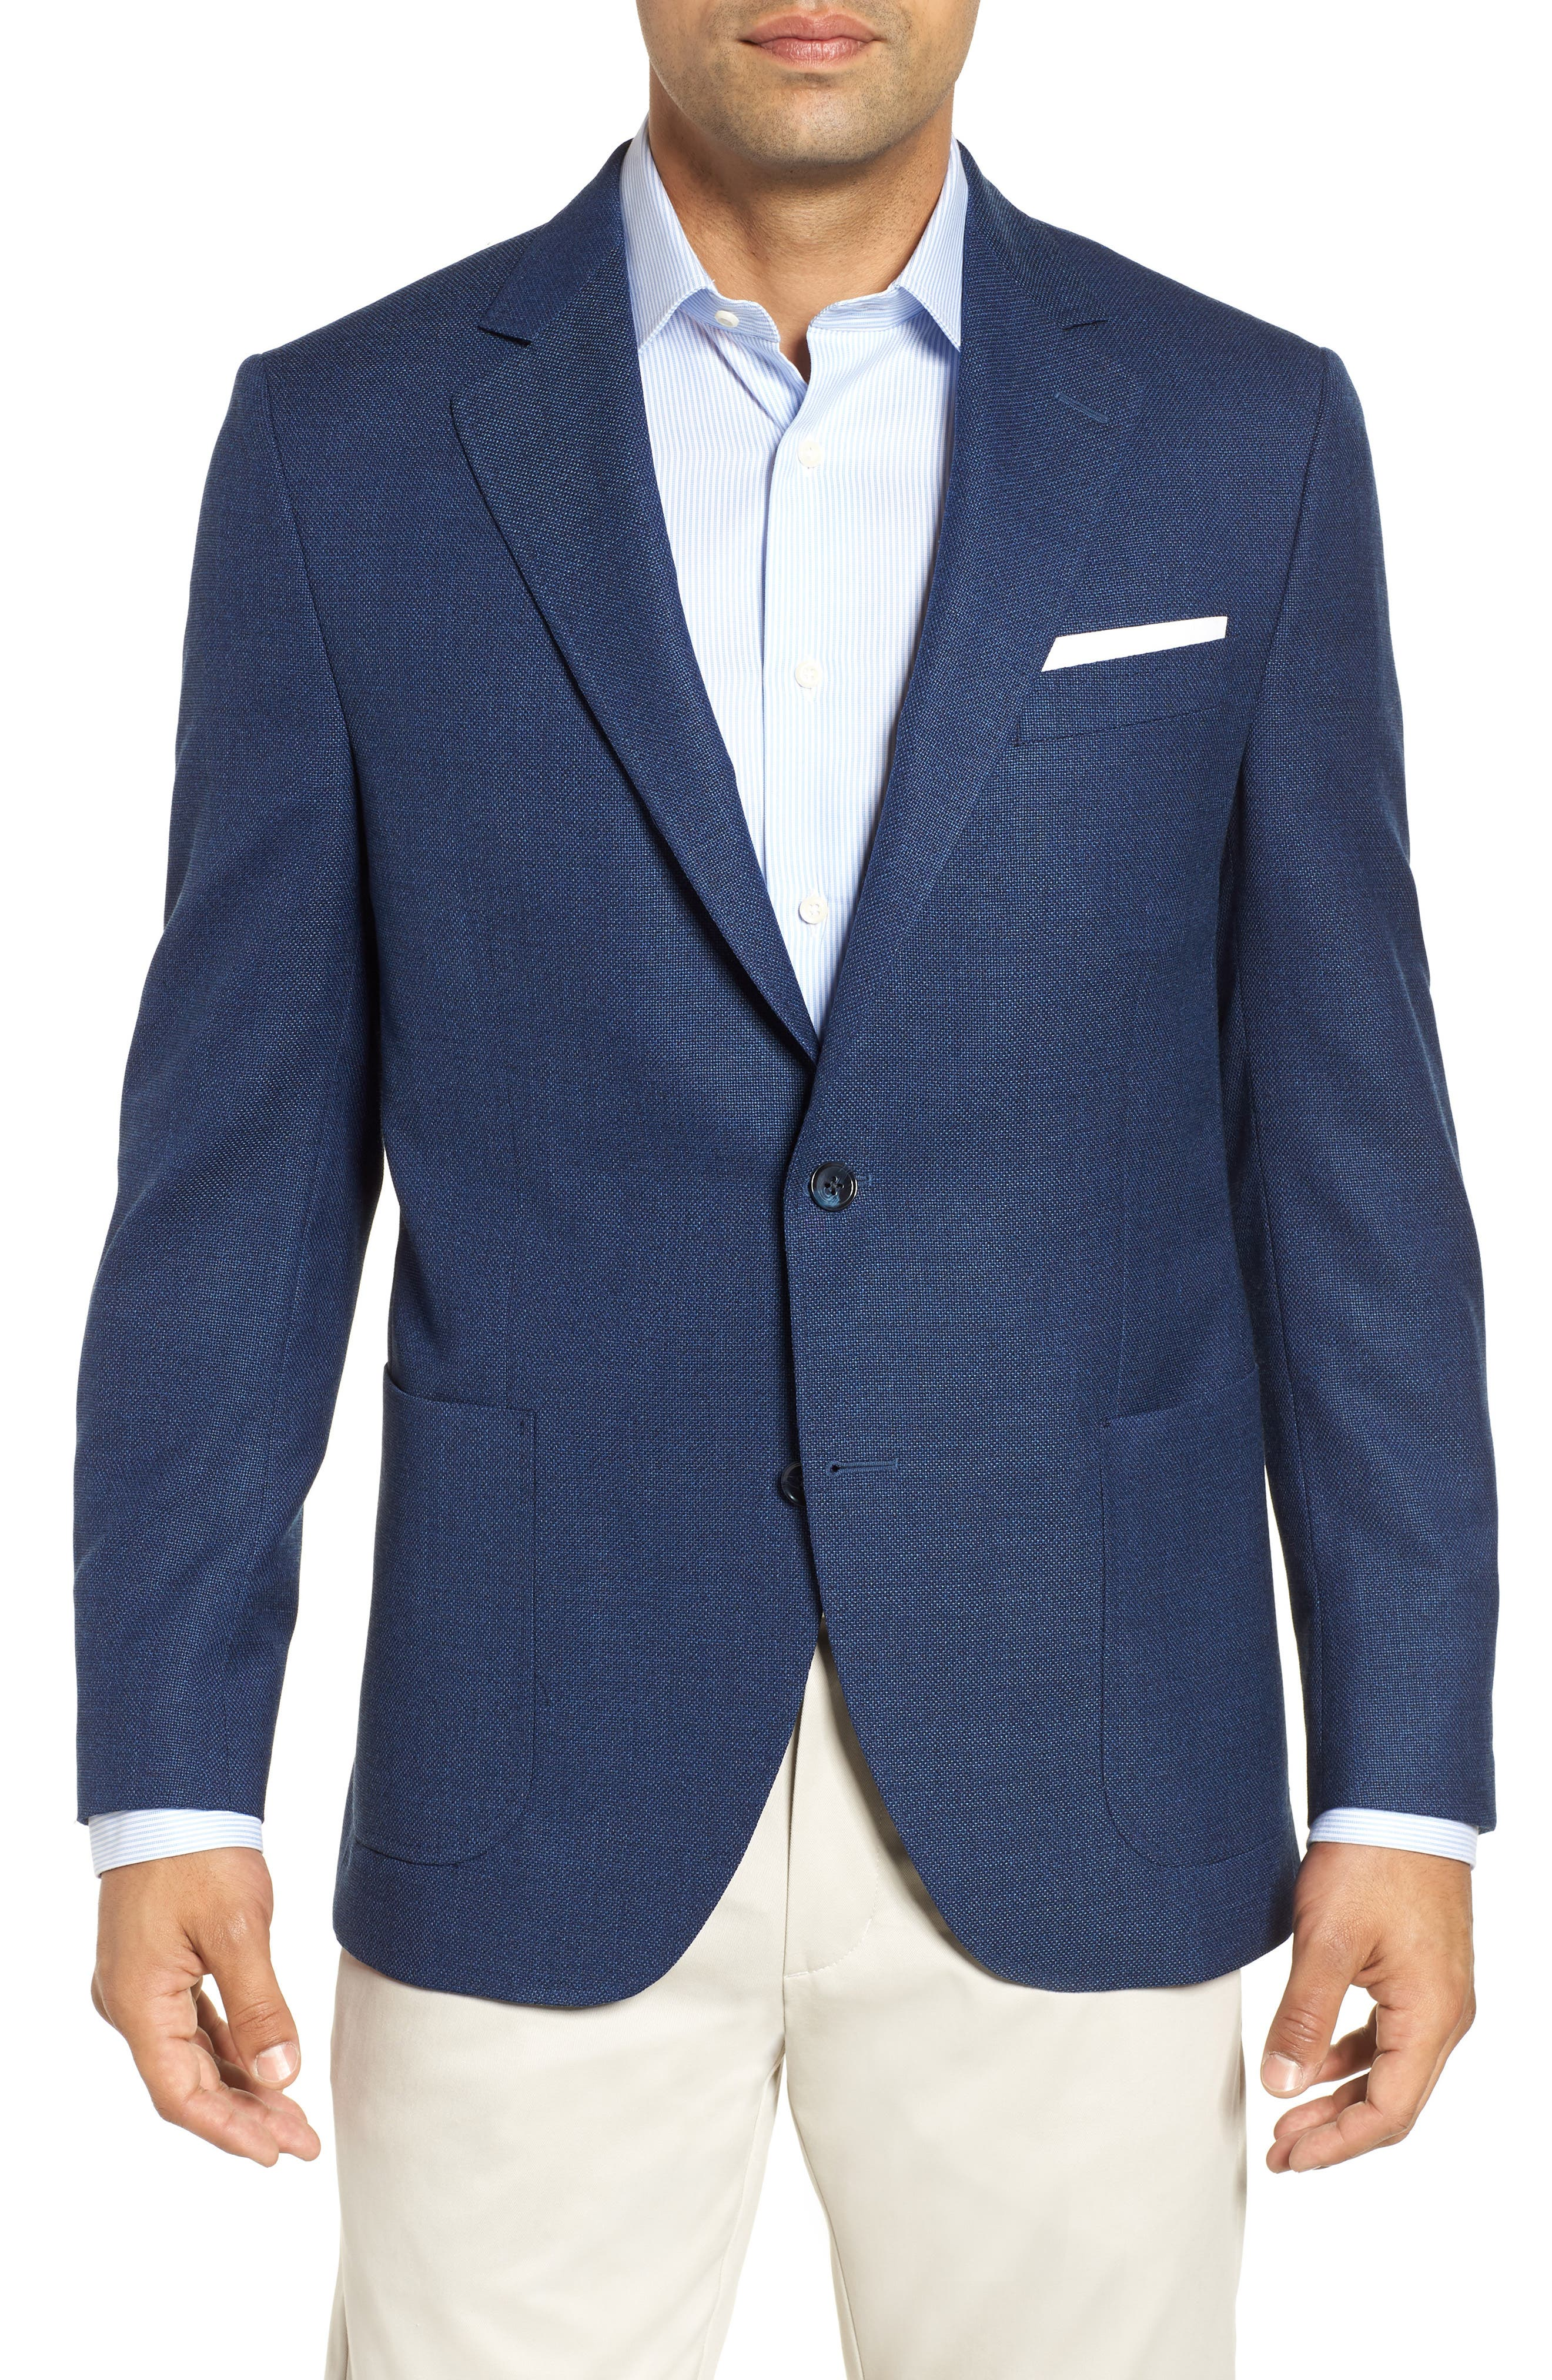 Hyperlight Classic Fit Wool Sport Coat,                             Main thumbnail 1, color,                             BLUE